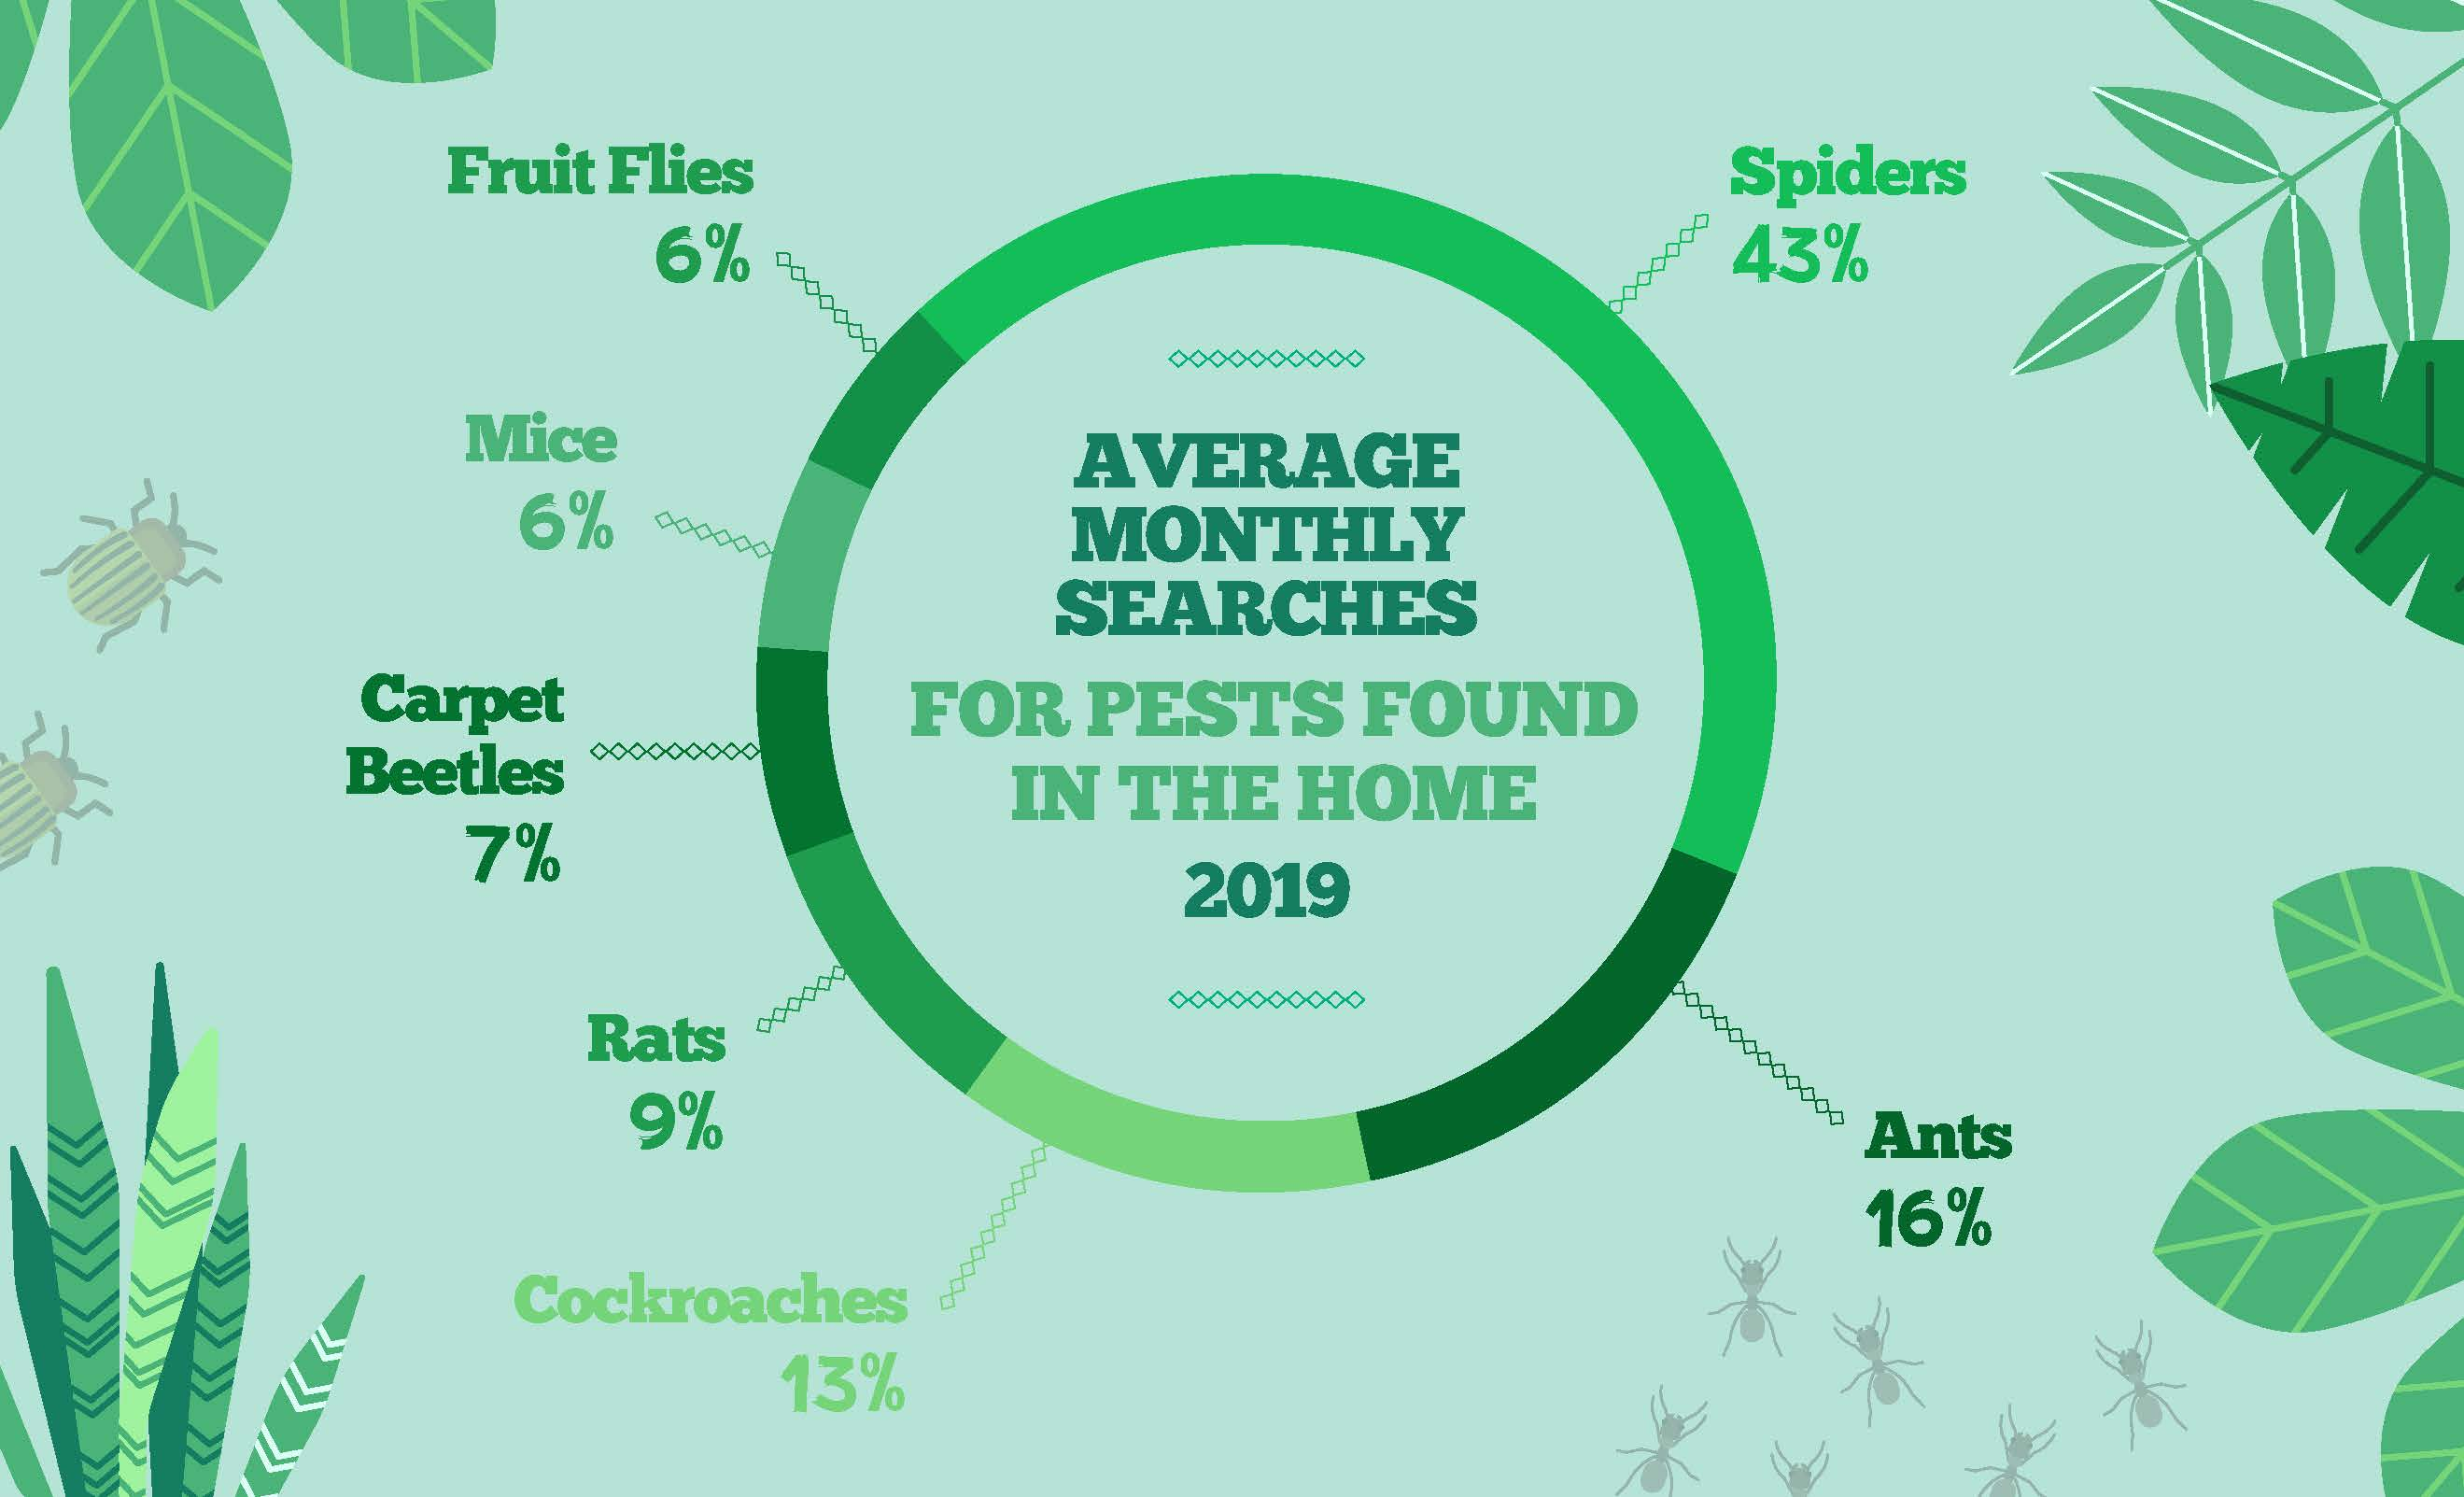 average monthly searches for pests found in the home 2019 - bugs in the home